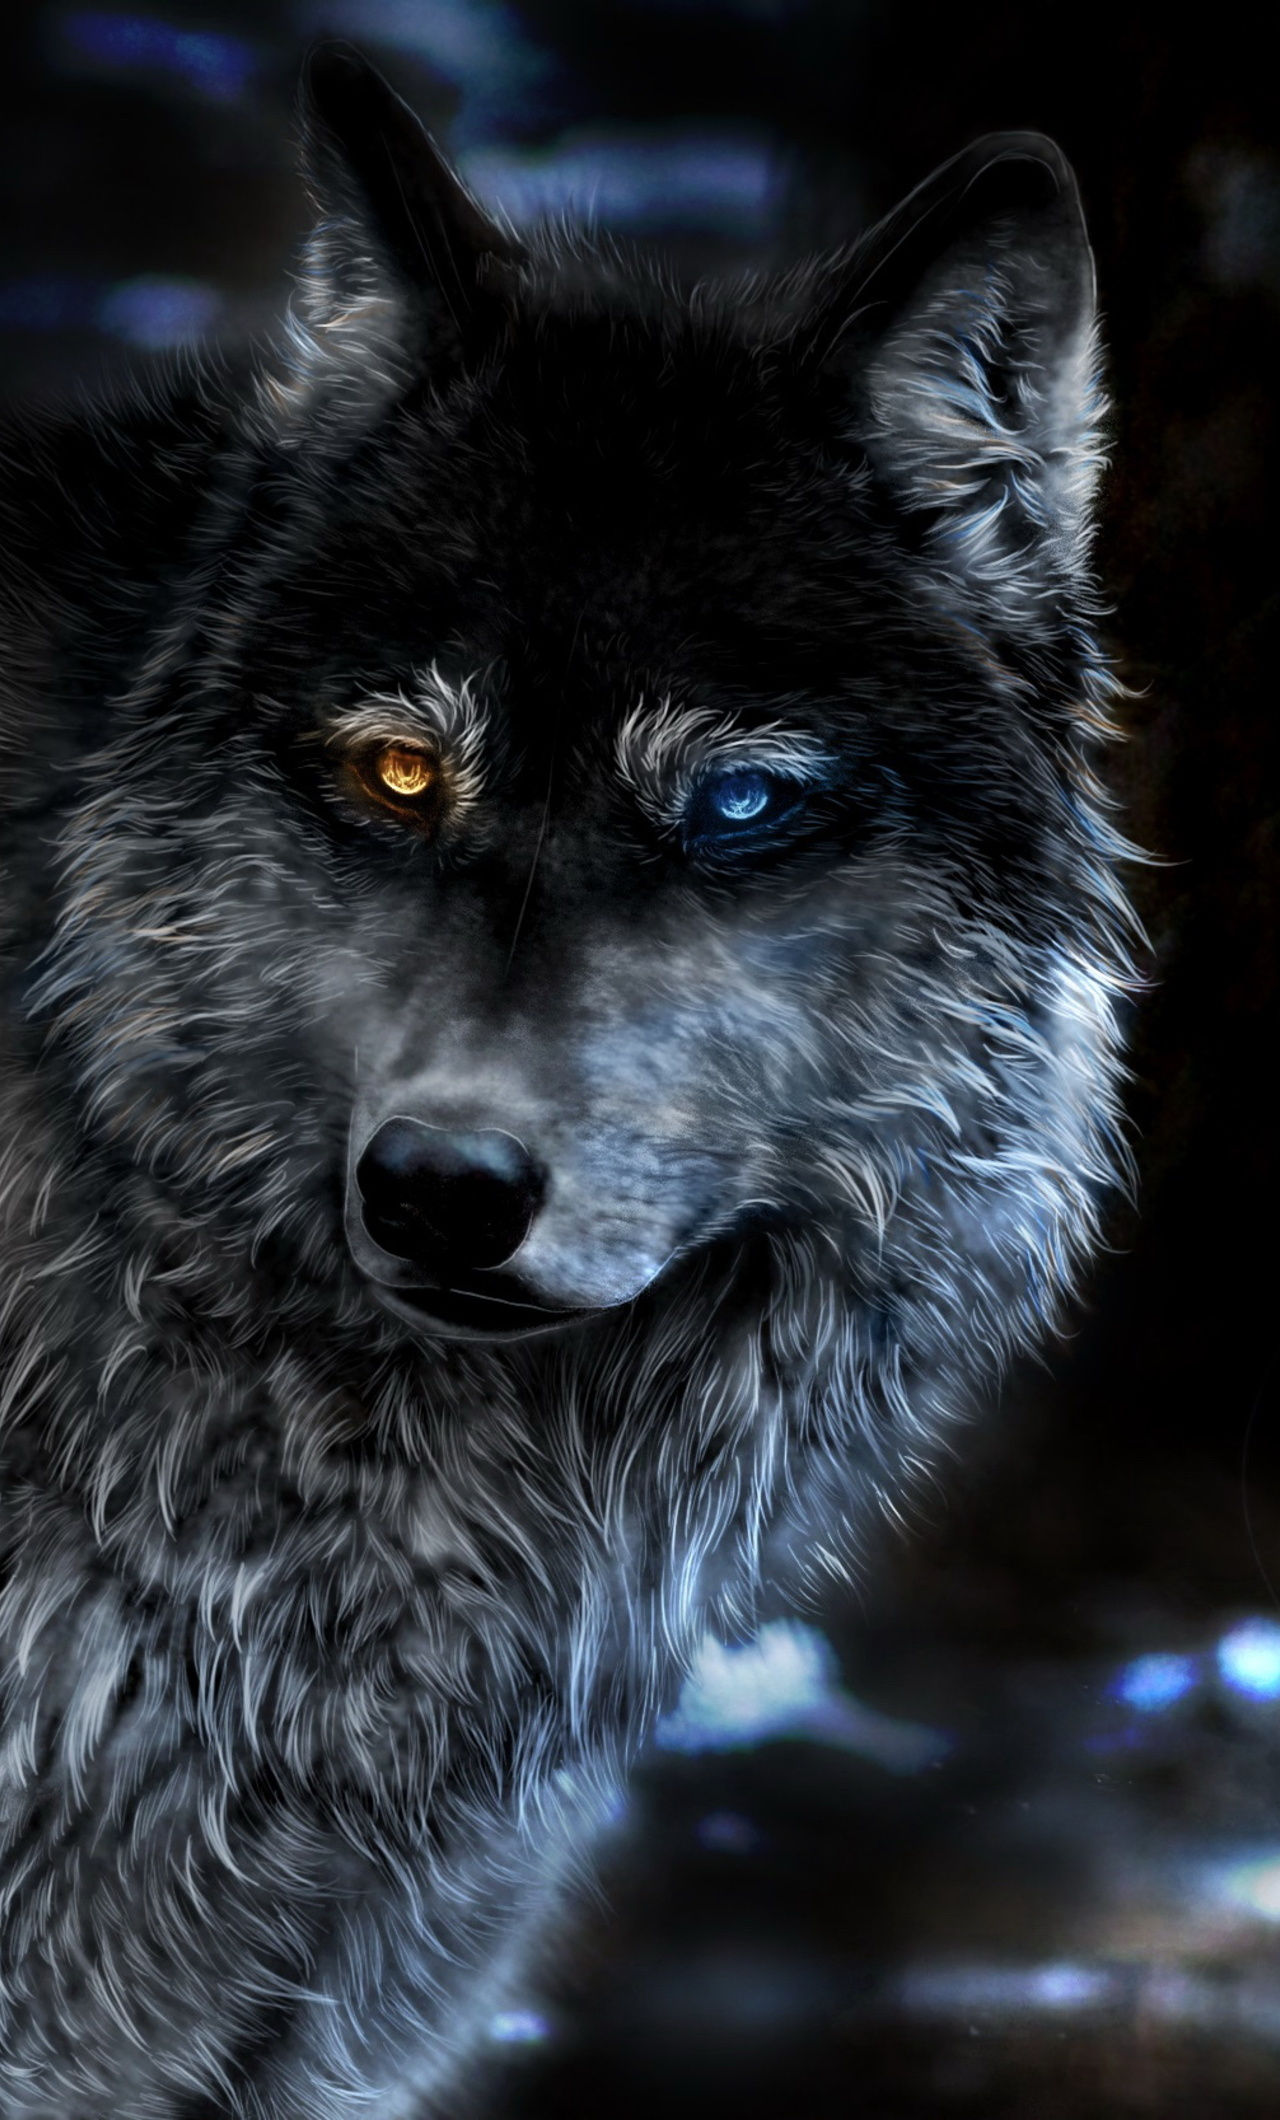 1280x2120 Wolf Heterochromia Fantasy Iphone 6 Hd 4k Wallpapers